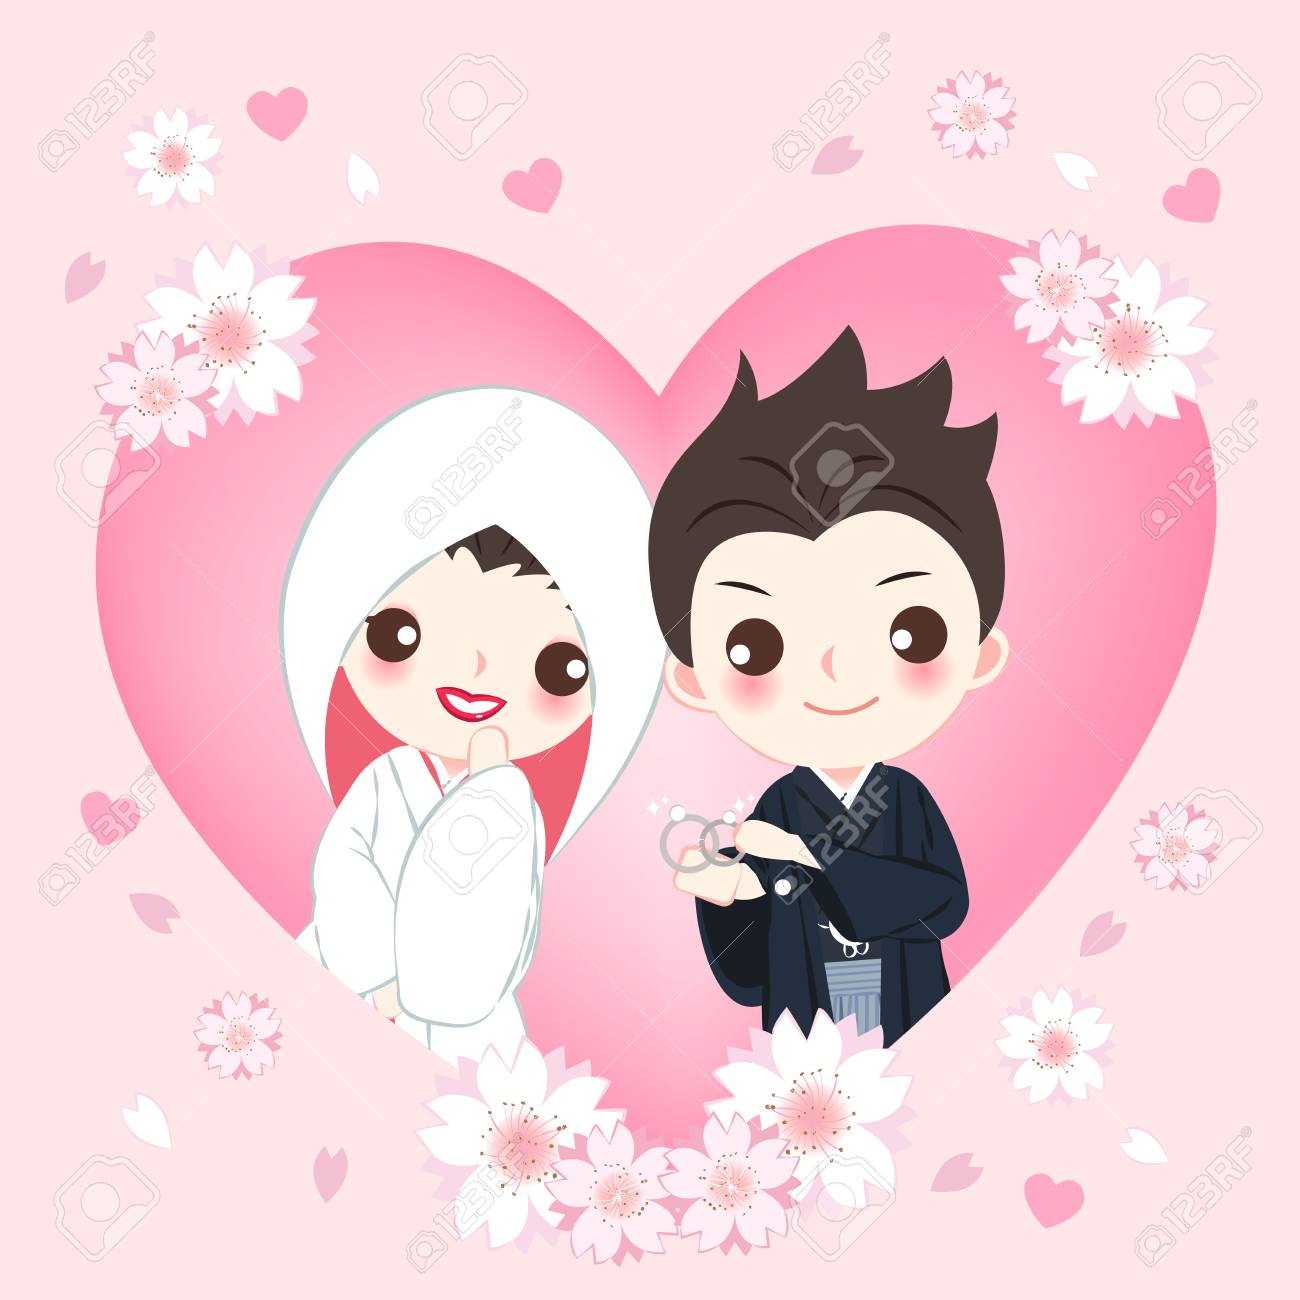 Cute Cartoon Japanese Wedding Couple On The Pink Background Royalty Free Cliparts Vectors And Stock Illustration Image 103832553